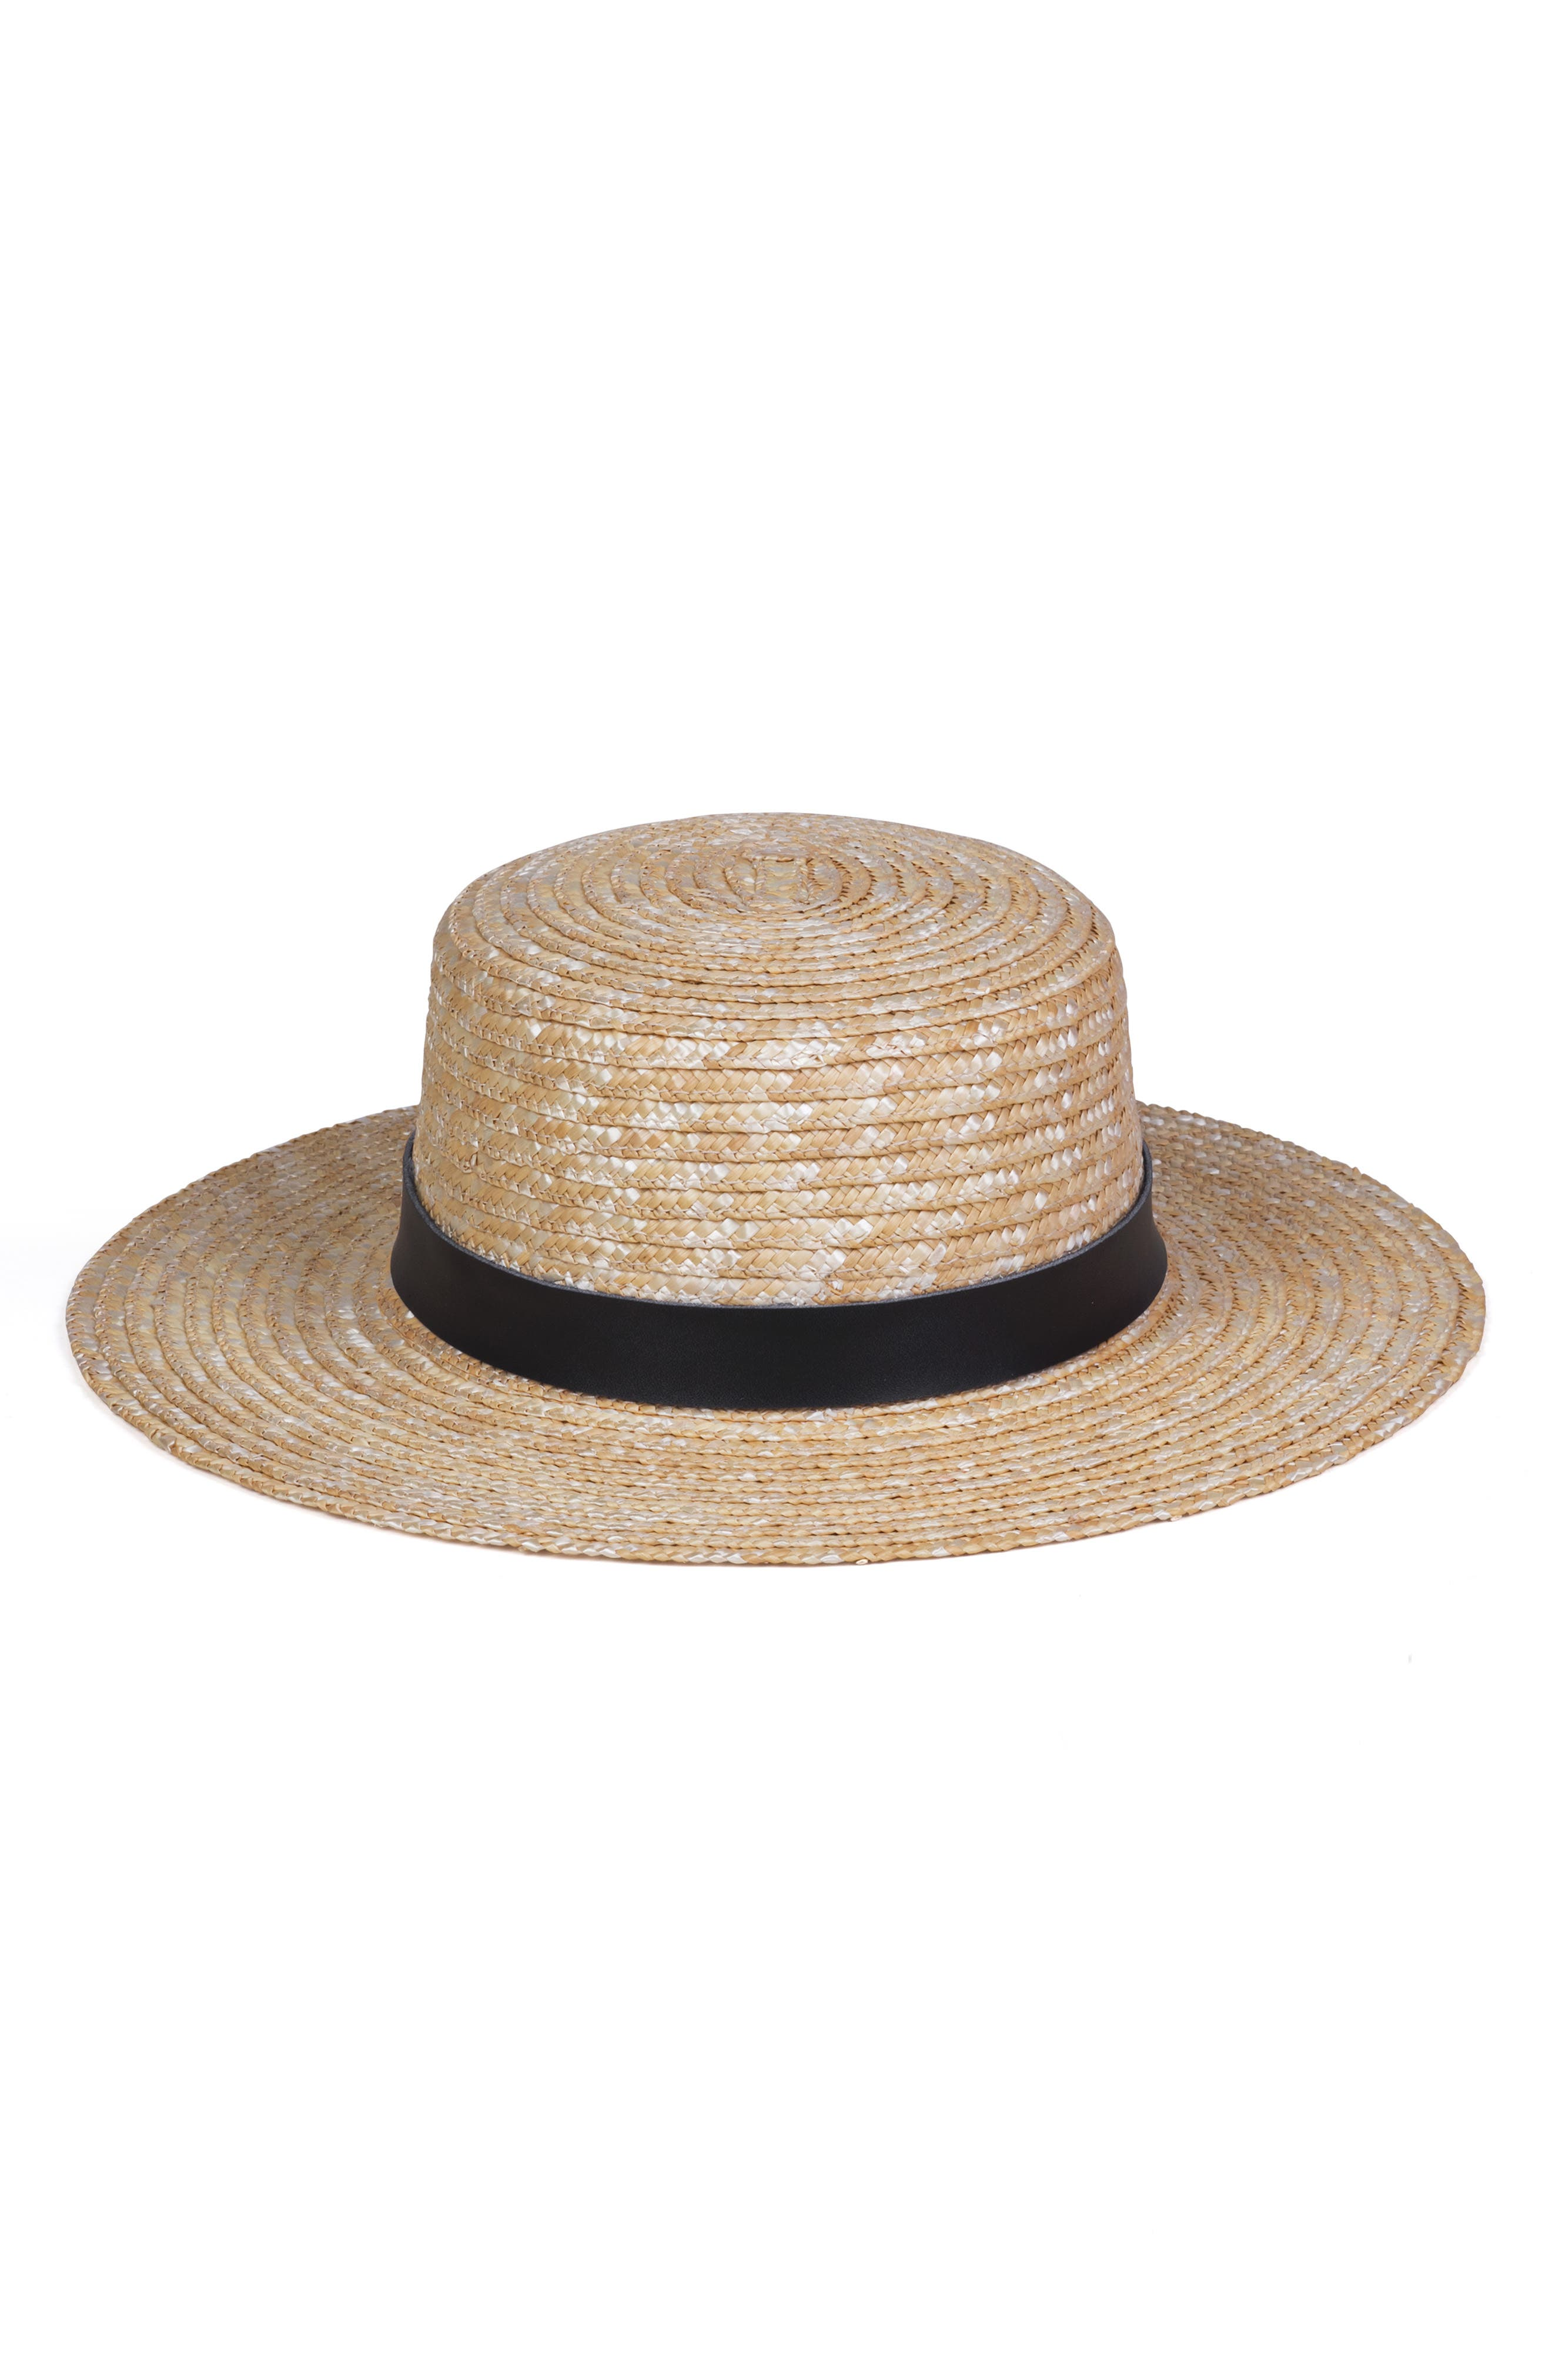 LACK OF COLOR Spencer Leather Band Straw Hat - Brown in Black